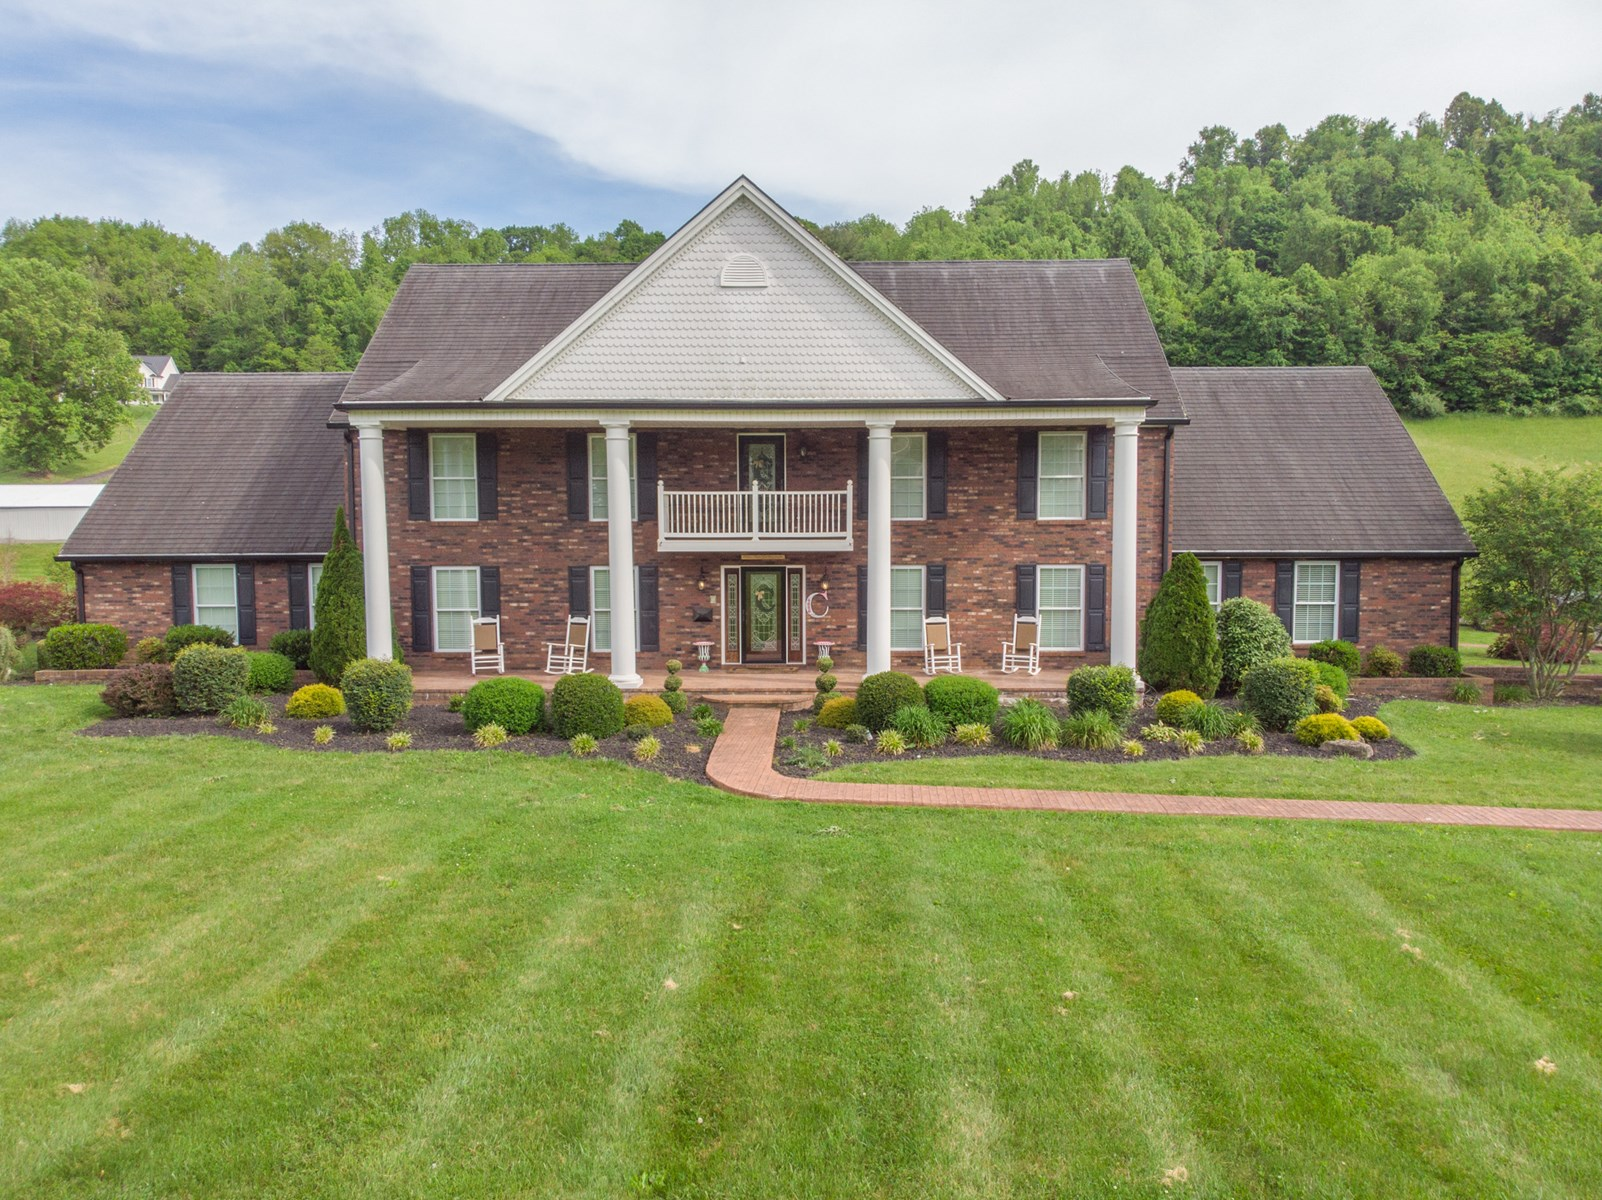 5 BR 2.5 BA Country Home with  29 Acres Baptist Valley